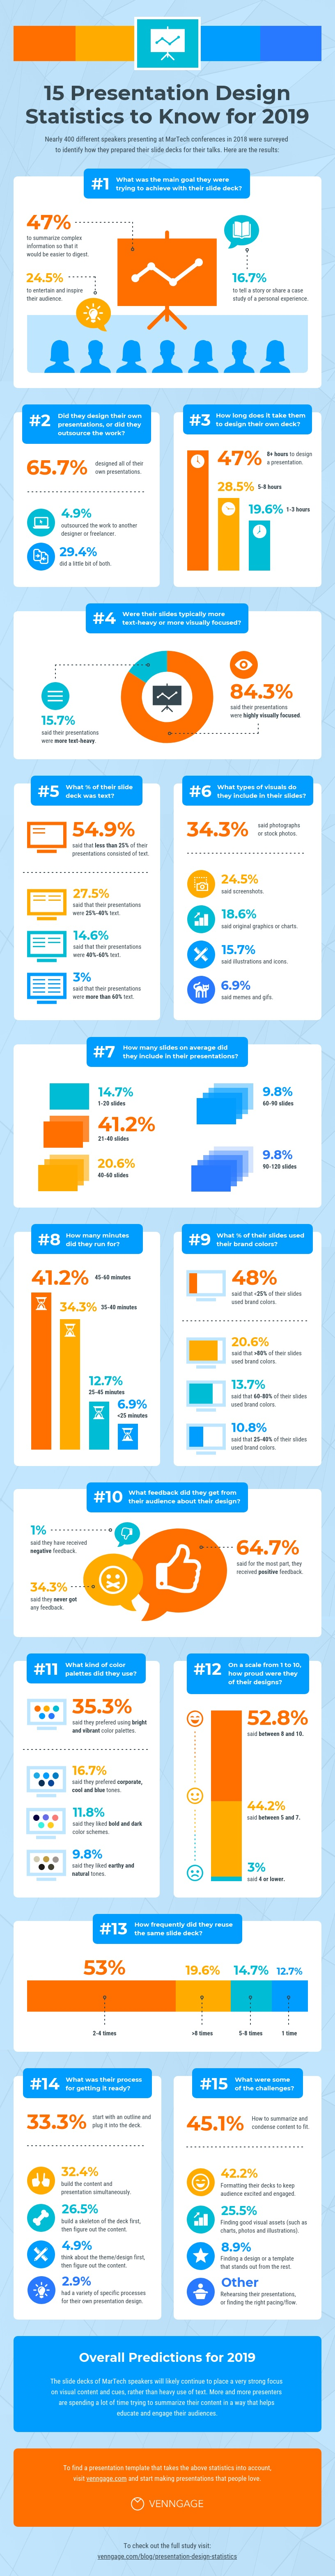 Infographic outlines a range of presentation creation stats